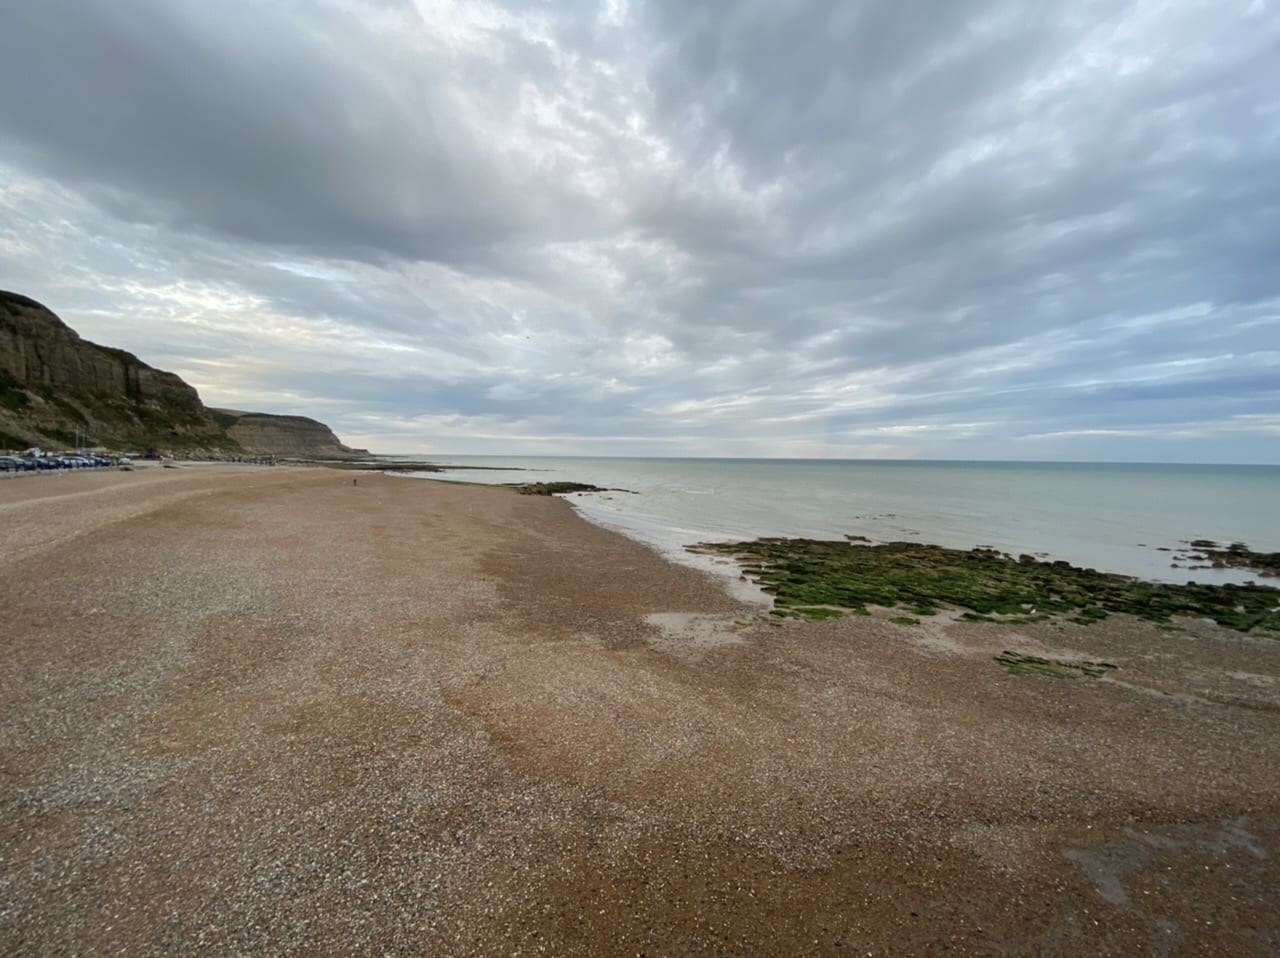 Hastings Stade - a Saxon word meaning a landing place